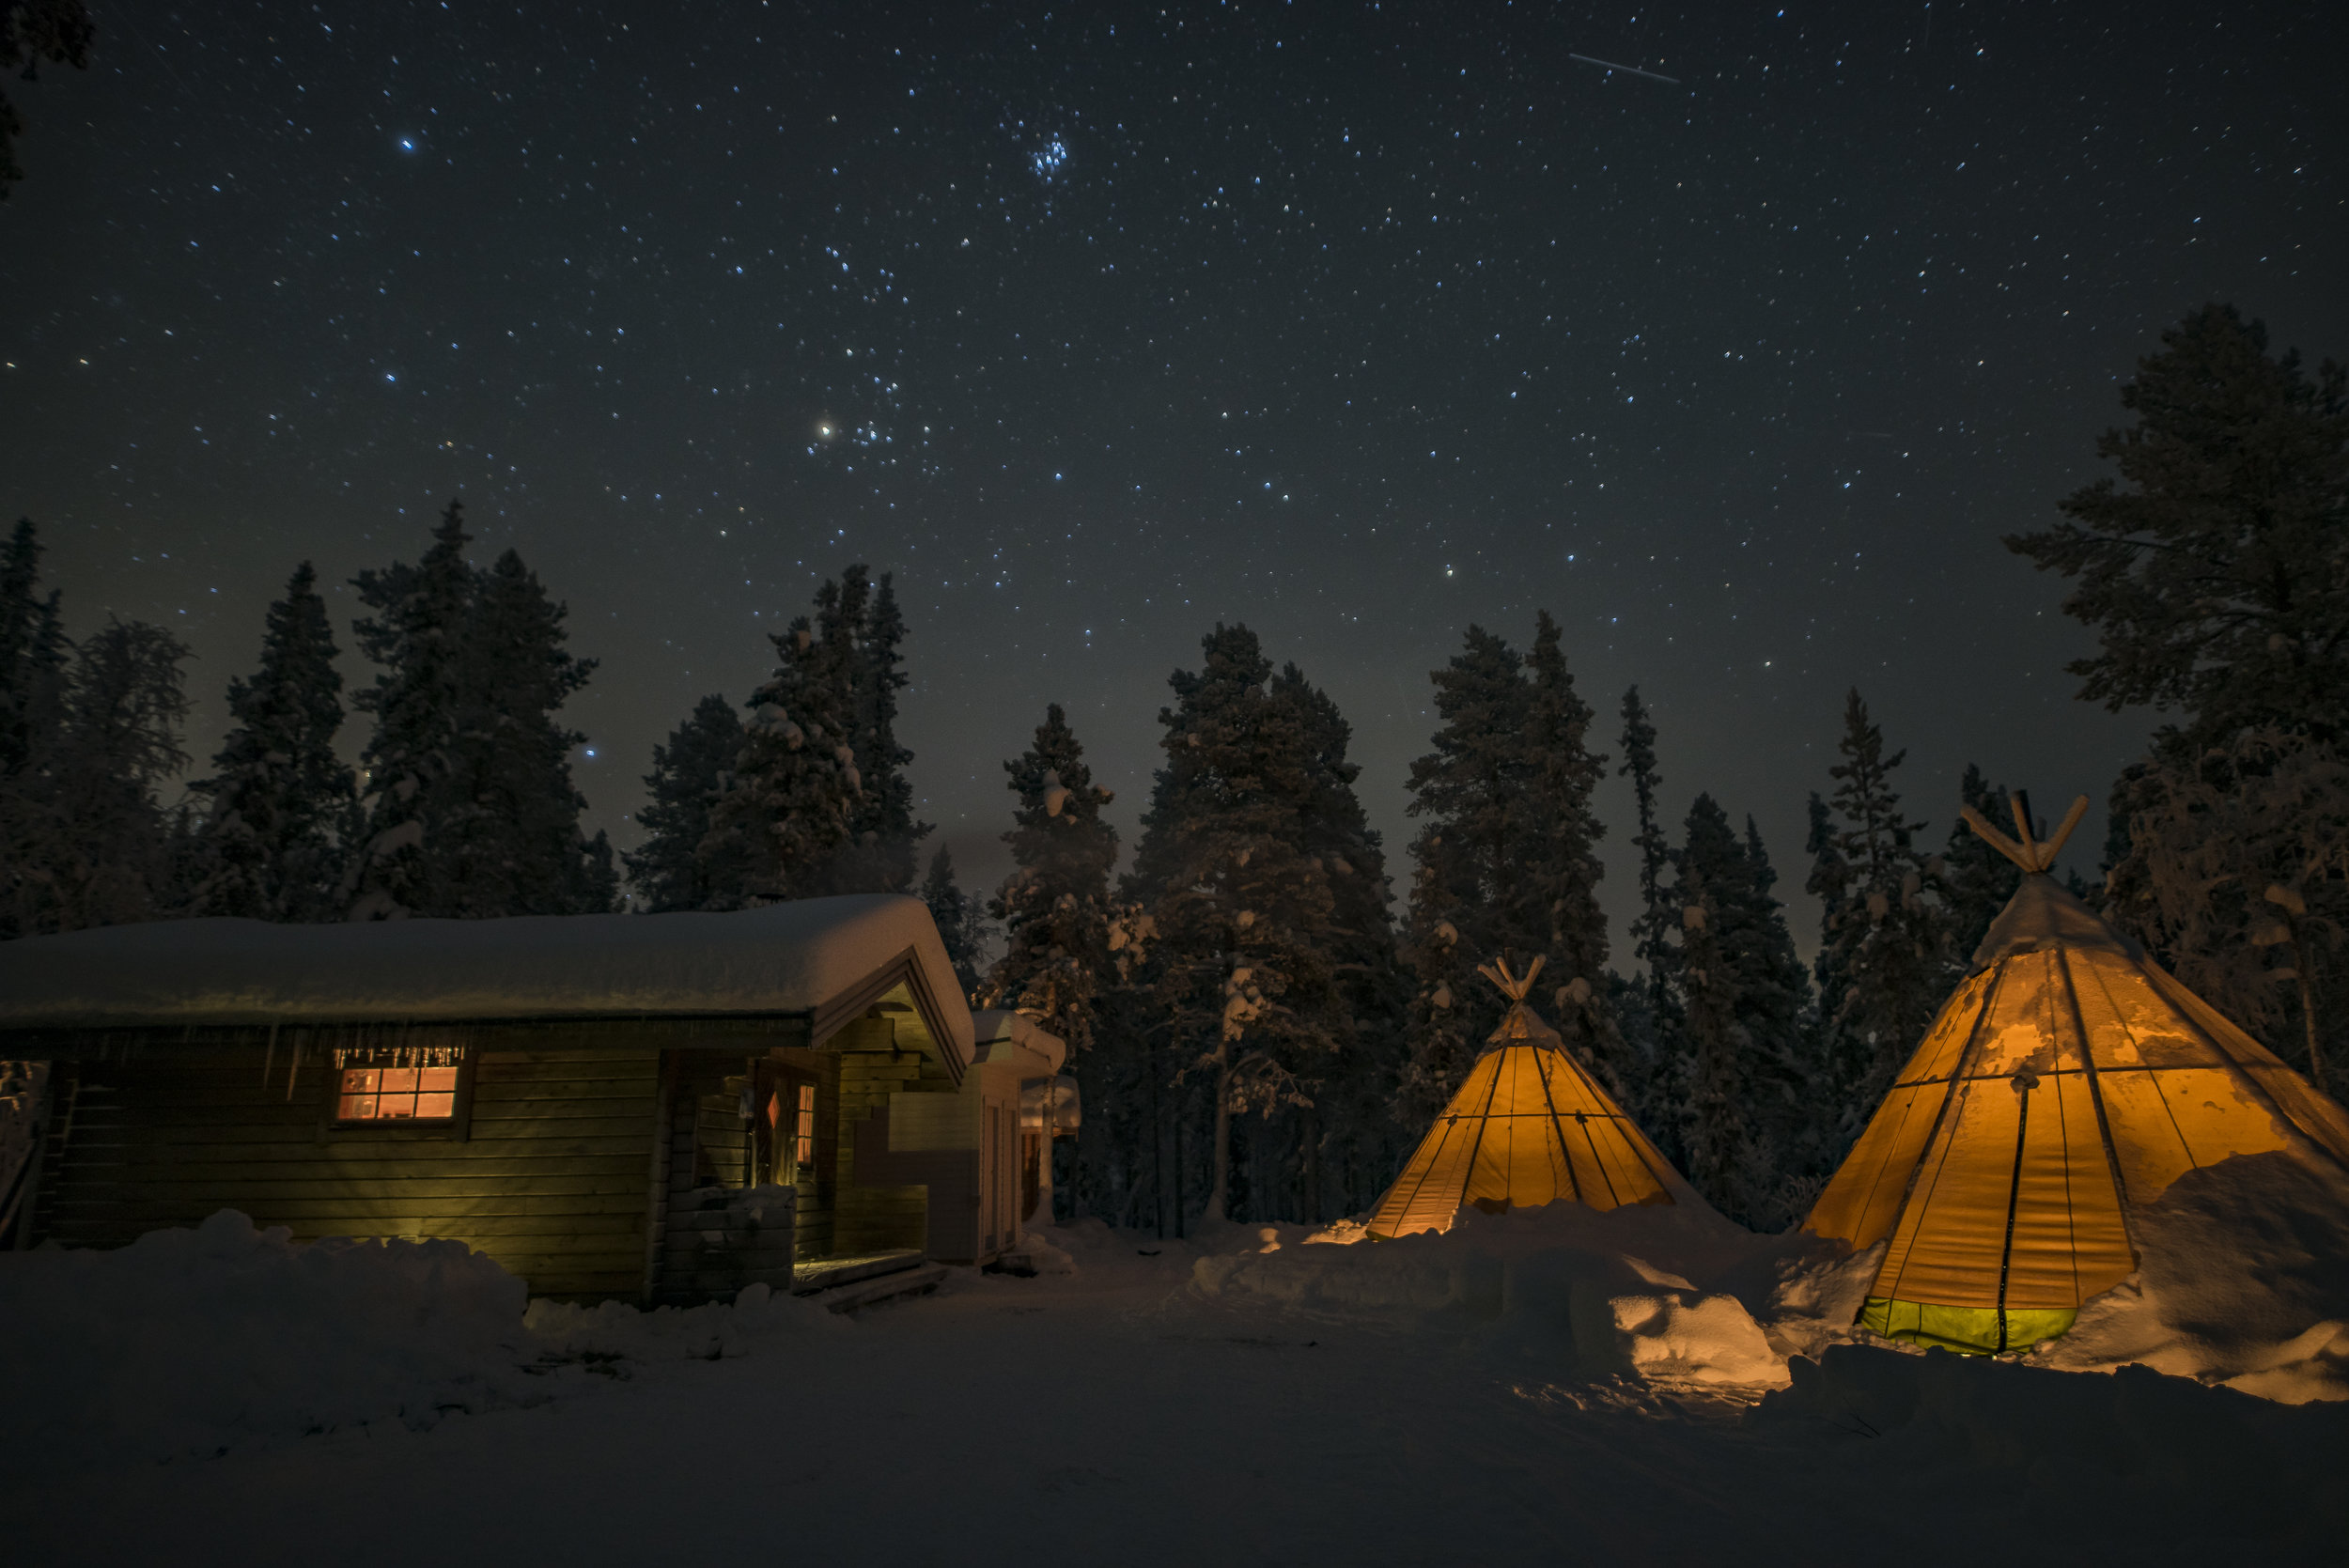 Glamping in Swedish Lapland. Photo: Lennart Pittja